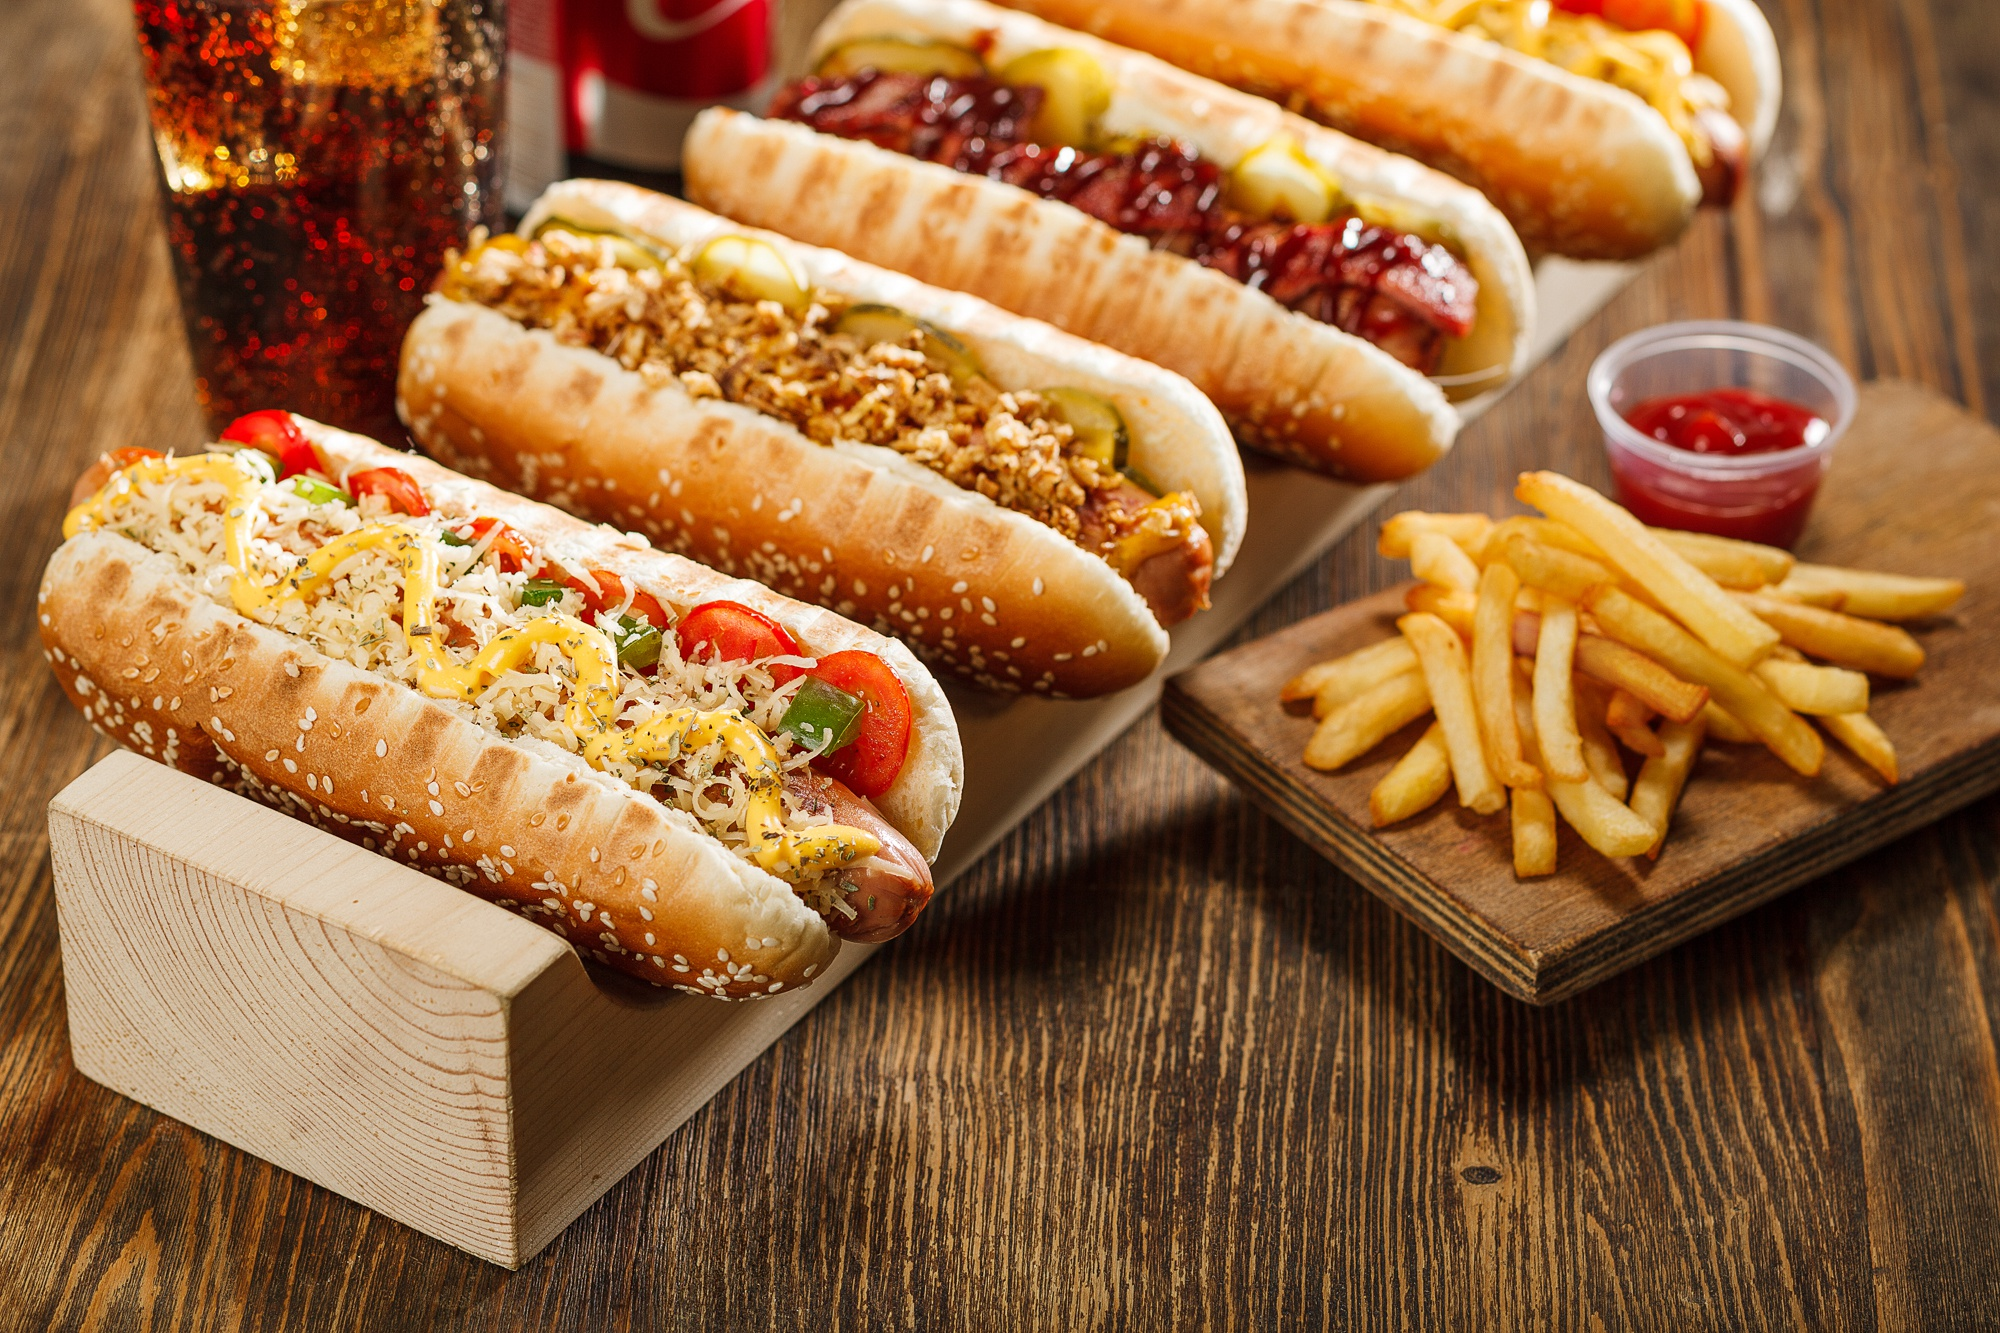 51 Hot Dog Hd Wallpapers Background Images Wallpaper Abyss